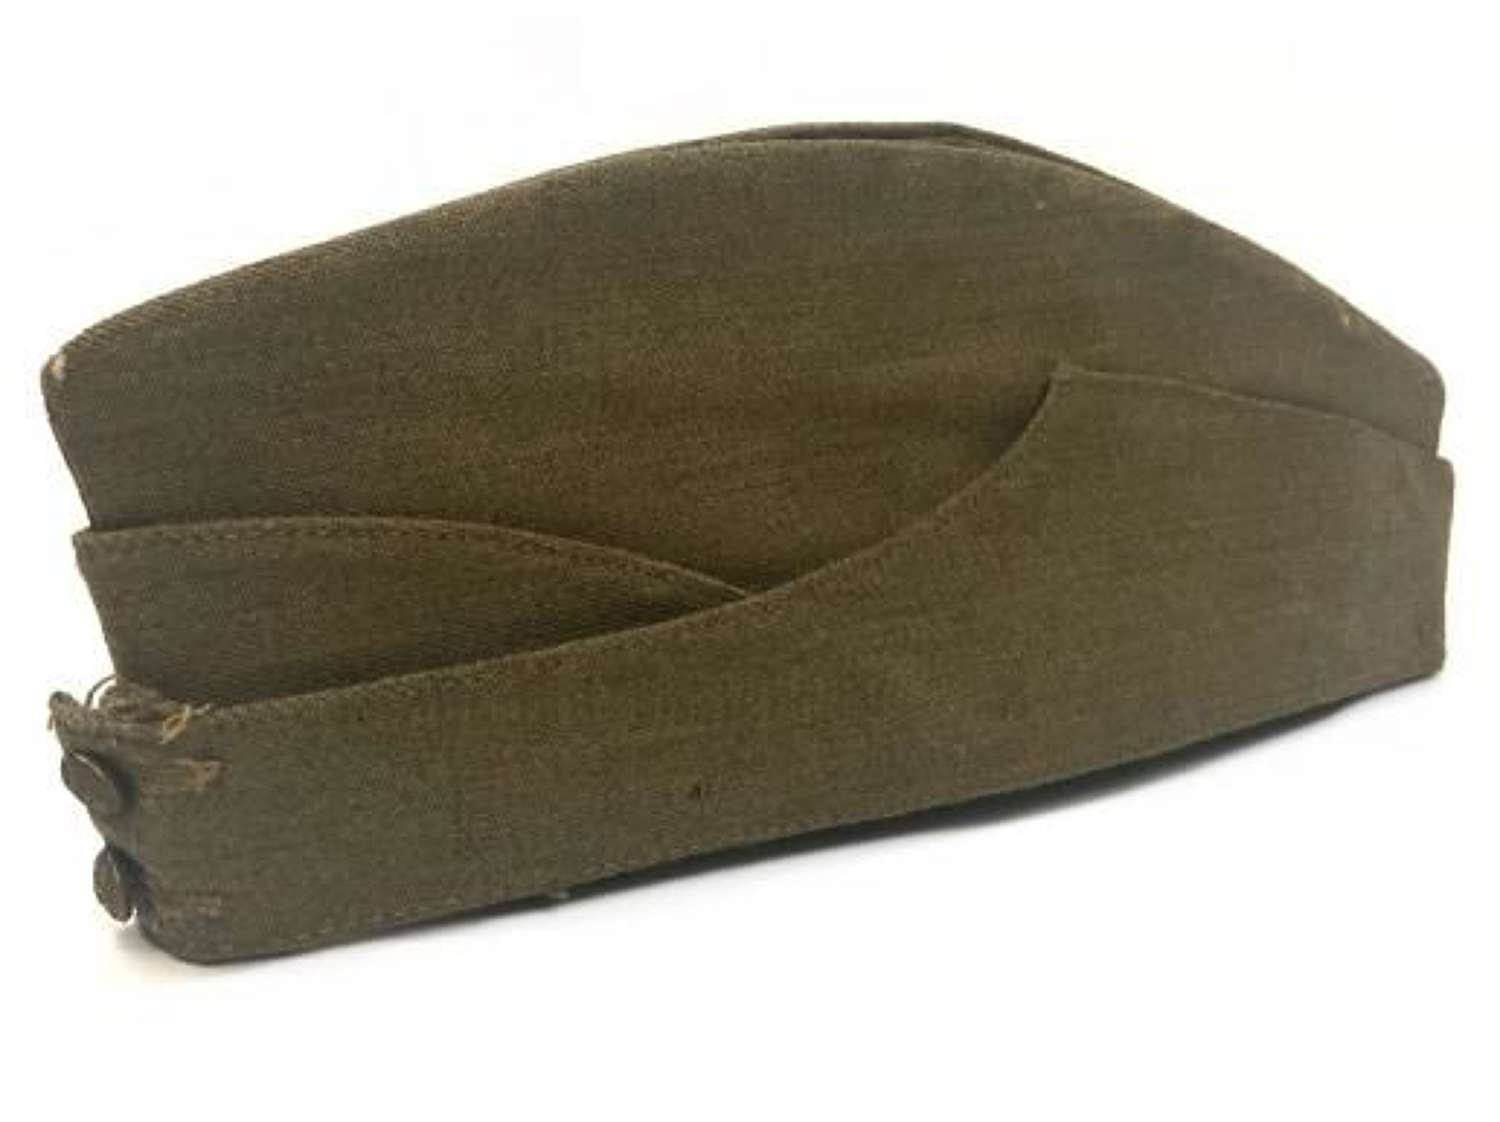 Original WW2 British Army Forage Cap - Size 7 1/2